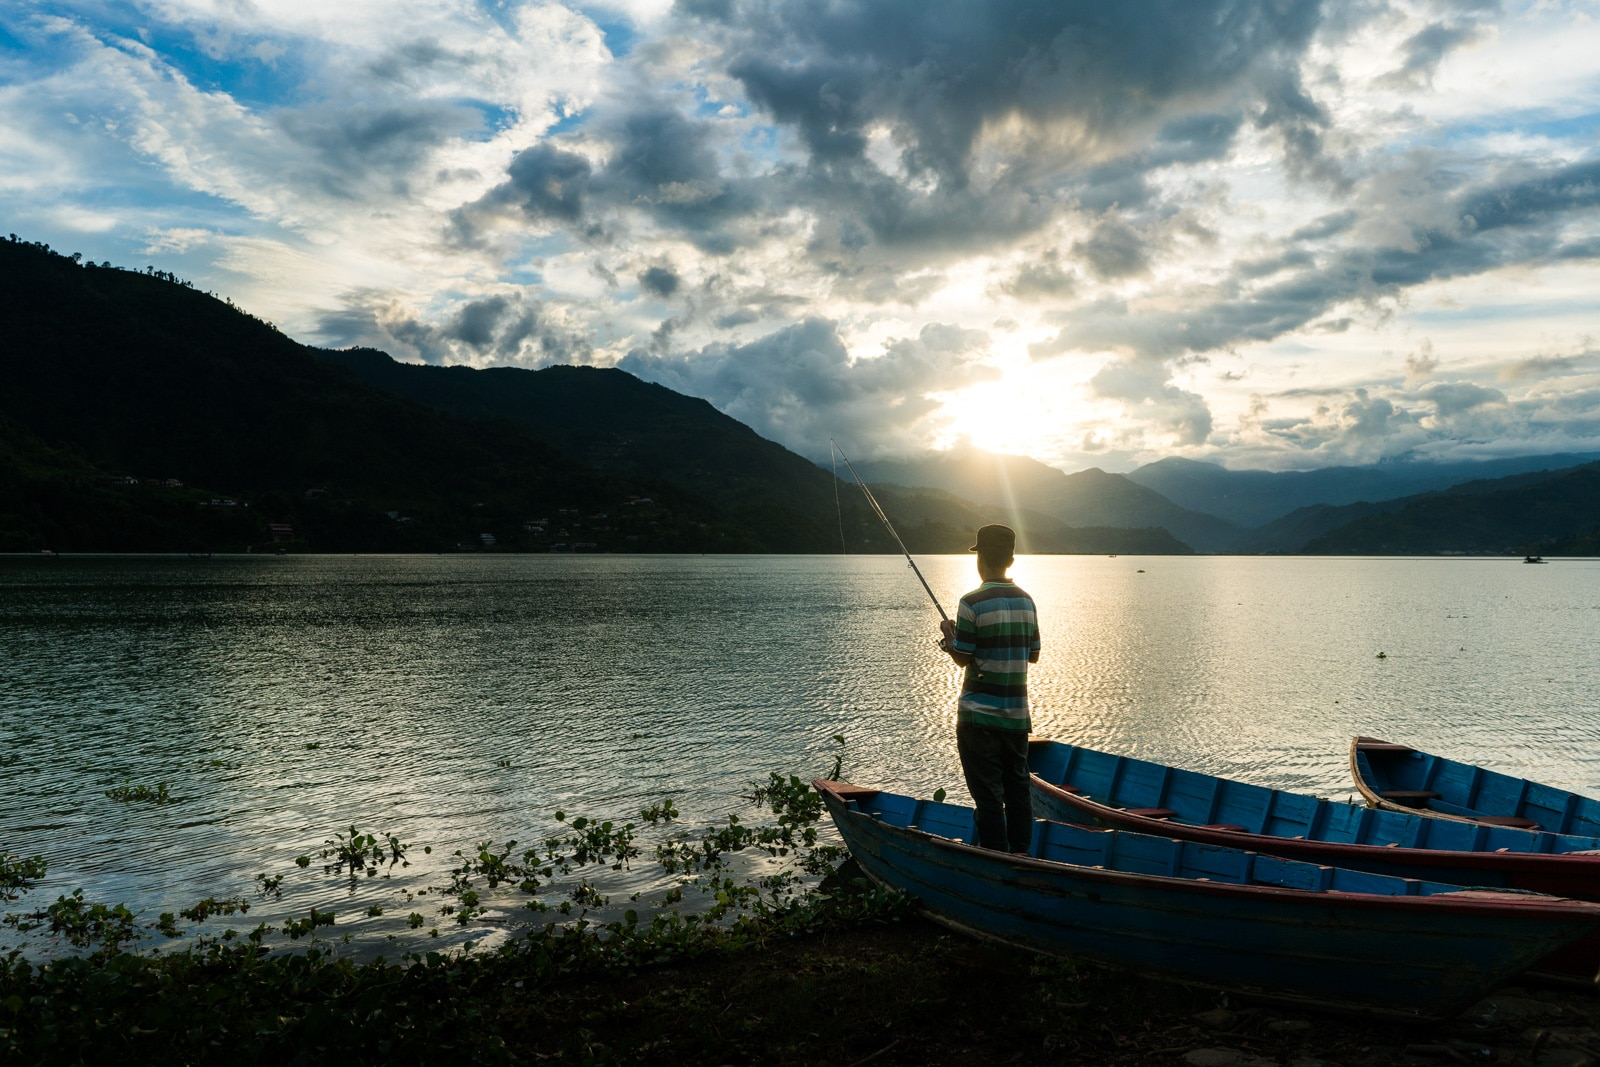 Travel in Nepal during monsoon - A boy fishing at Phewa Lake in Pokhara - Lost With Purpose travel blog